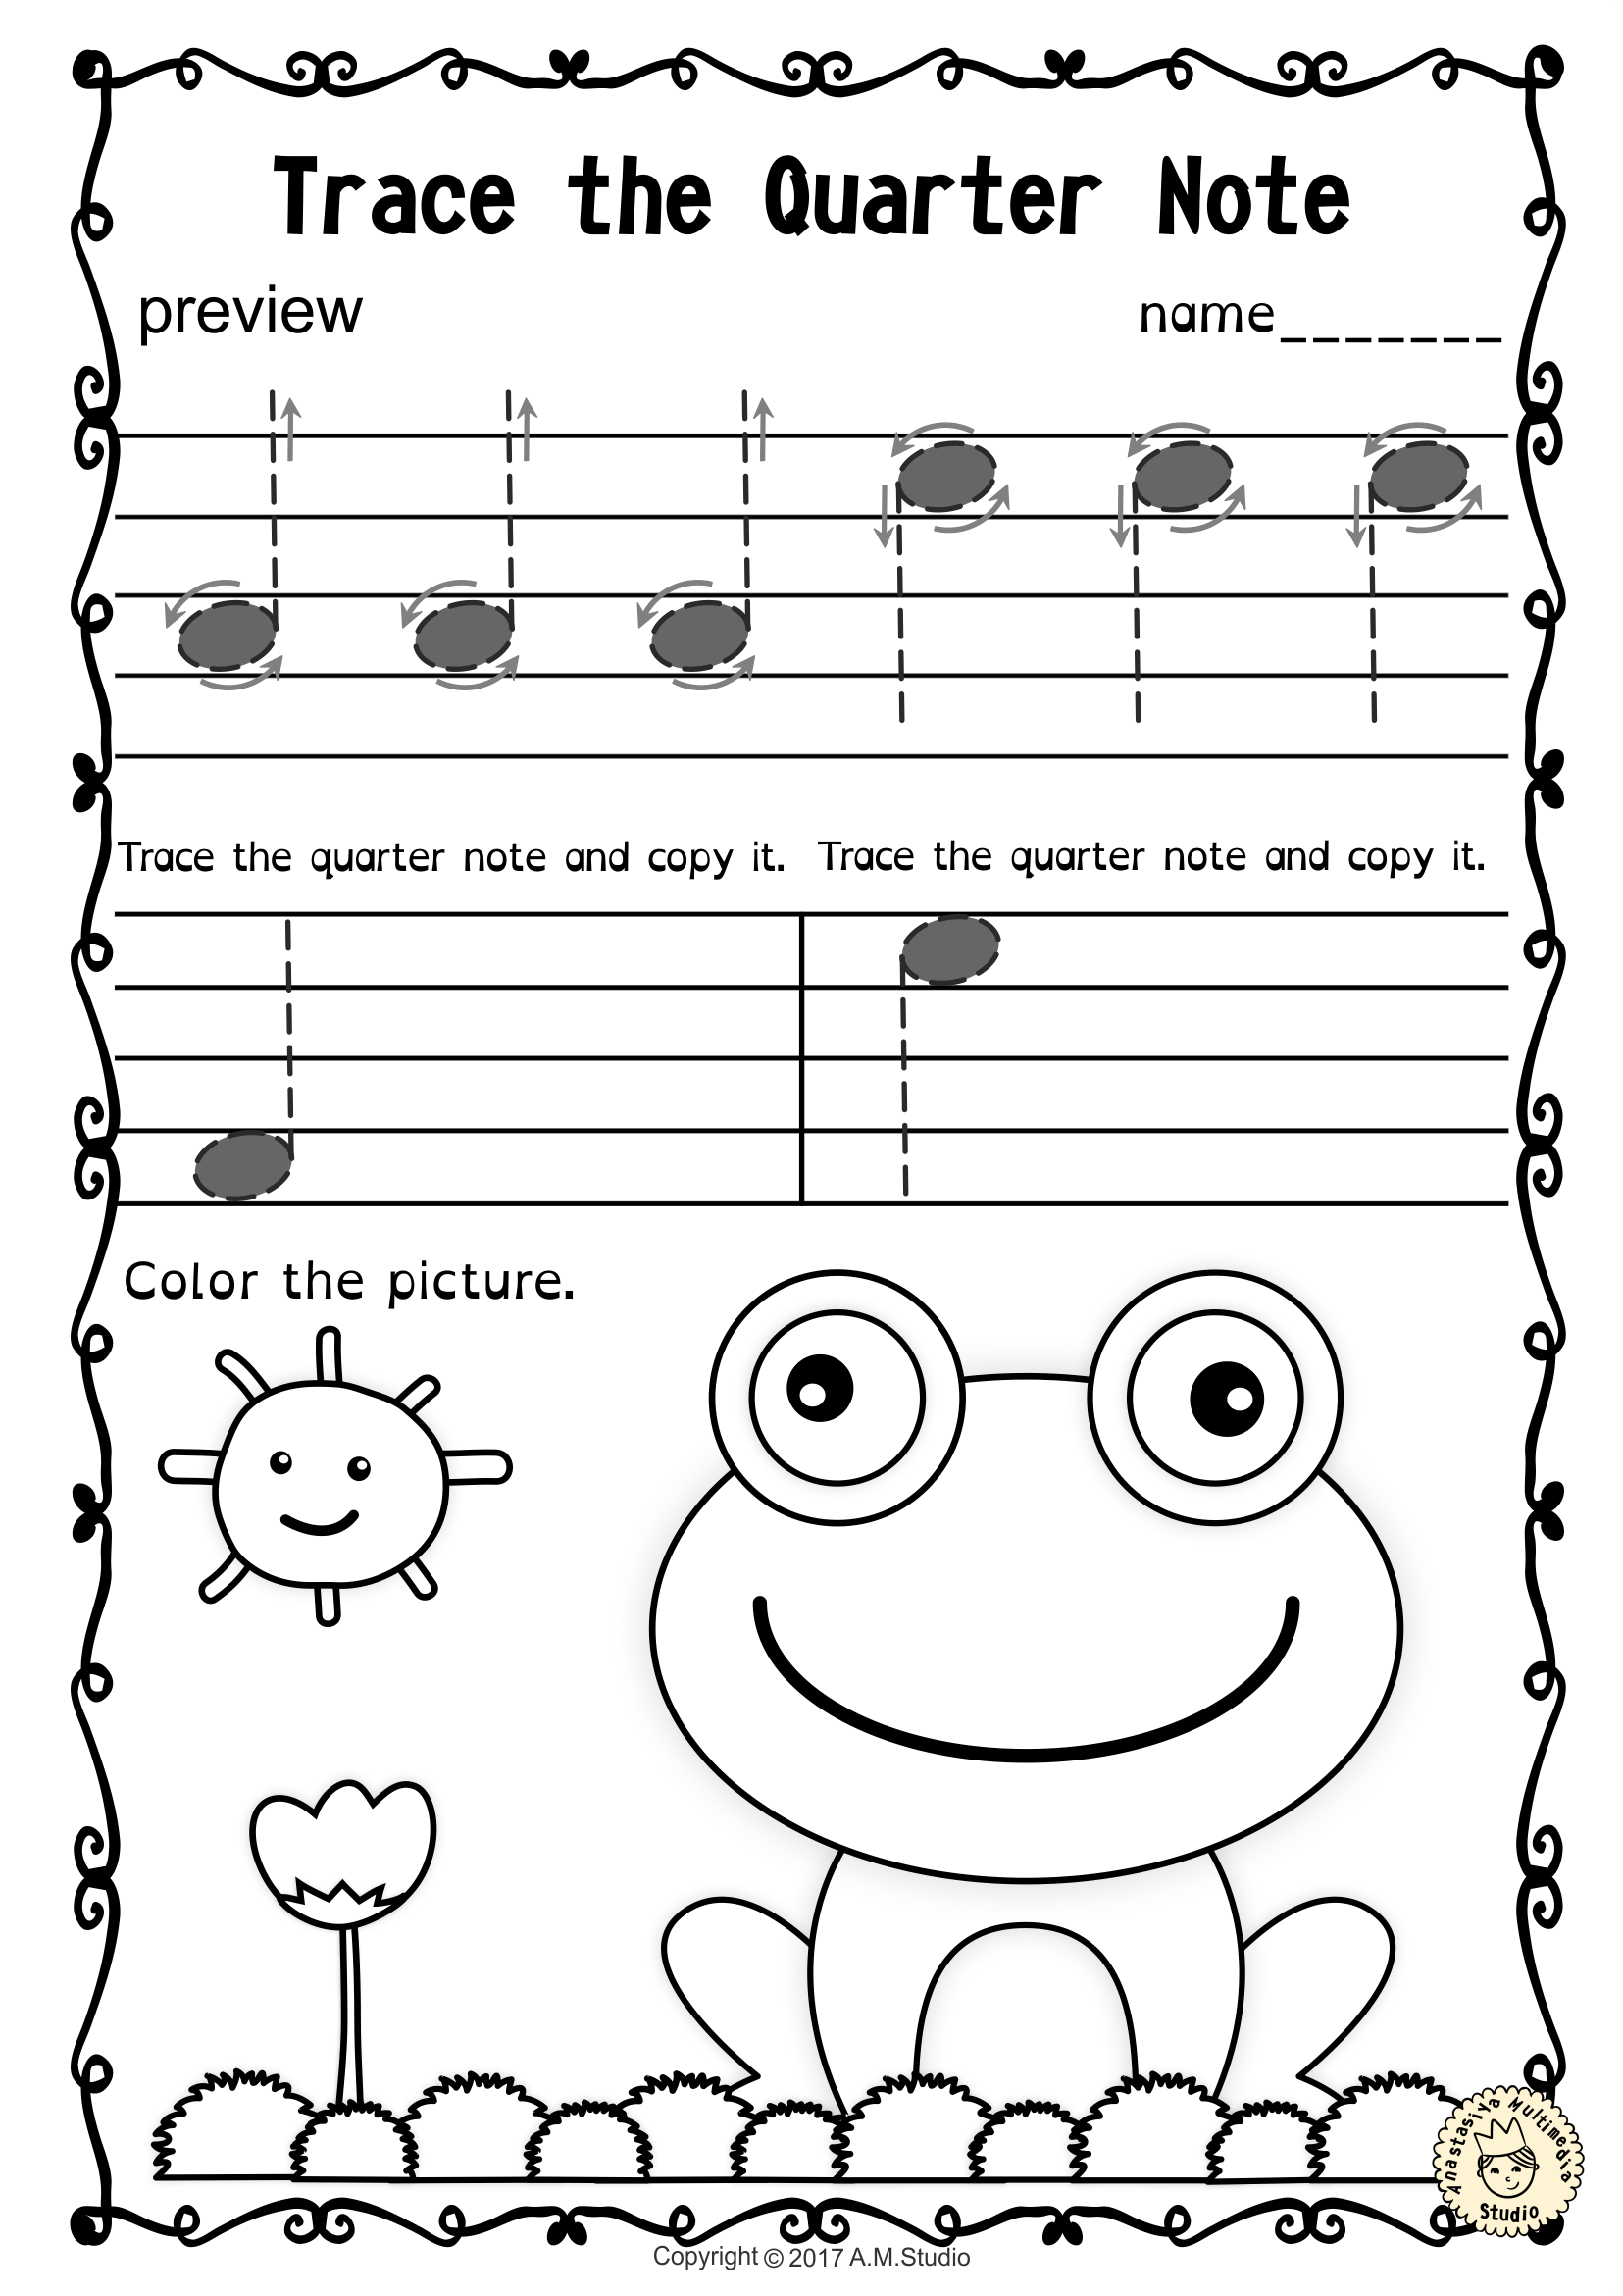 hight resolution of A set of 20 spring themed music worksheets is created to help your students  learn to trace